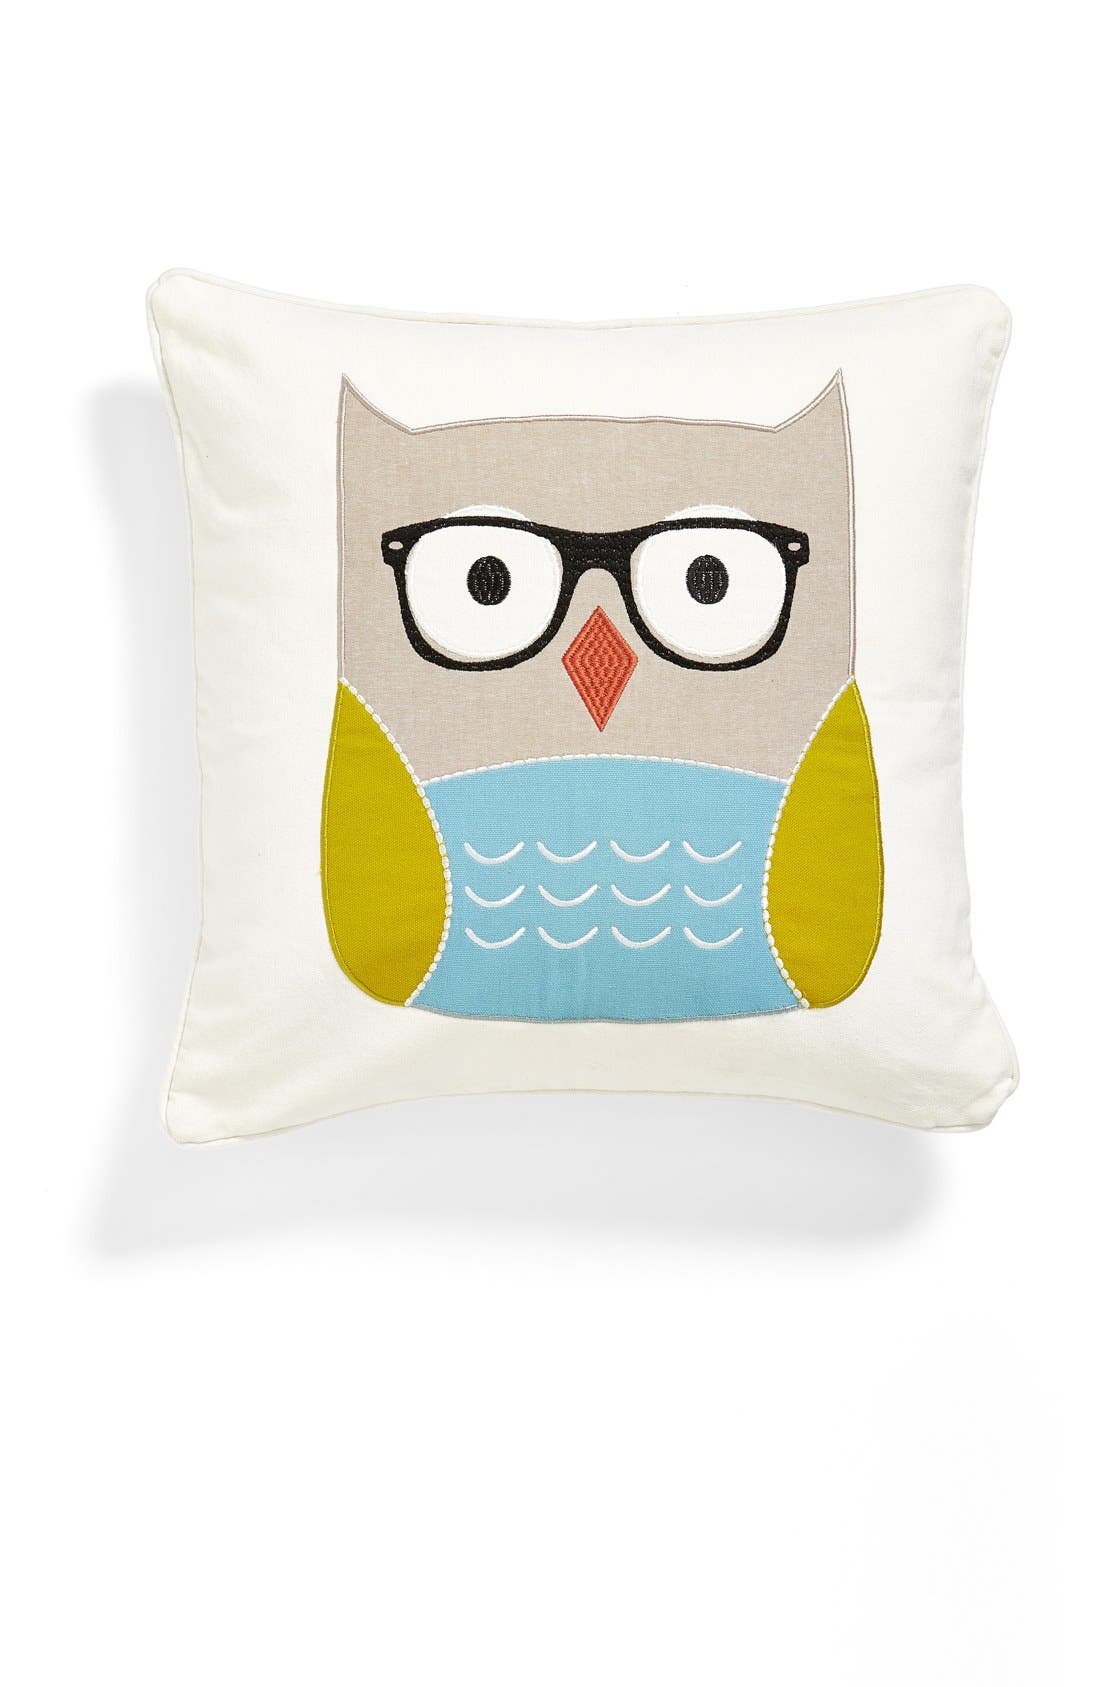 Alternate Image 1 Selected - Levtex 'Owl with Glasses' Accent Pillow